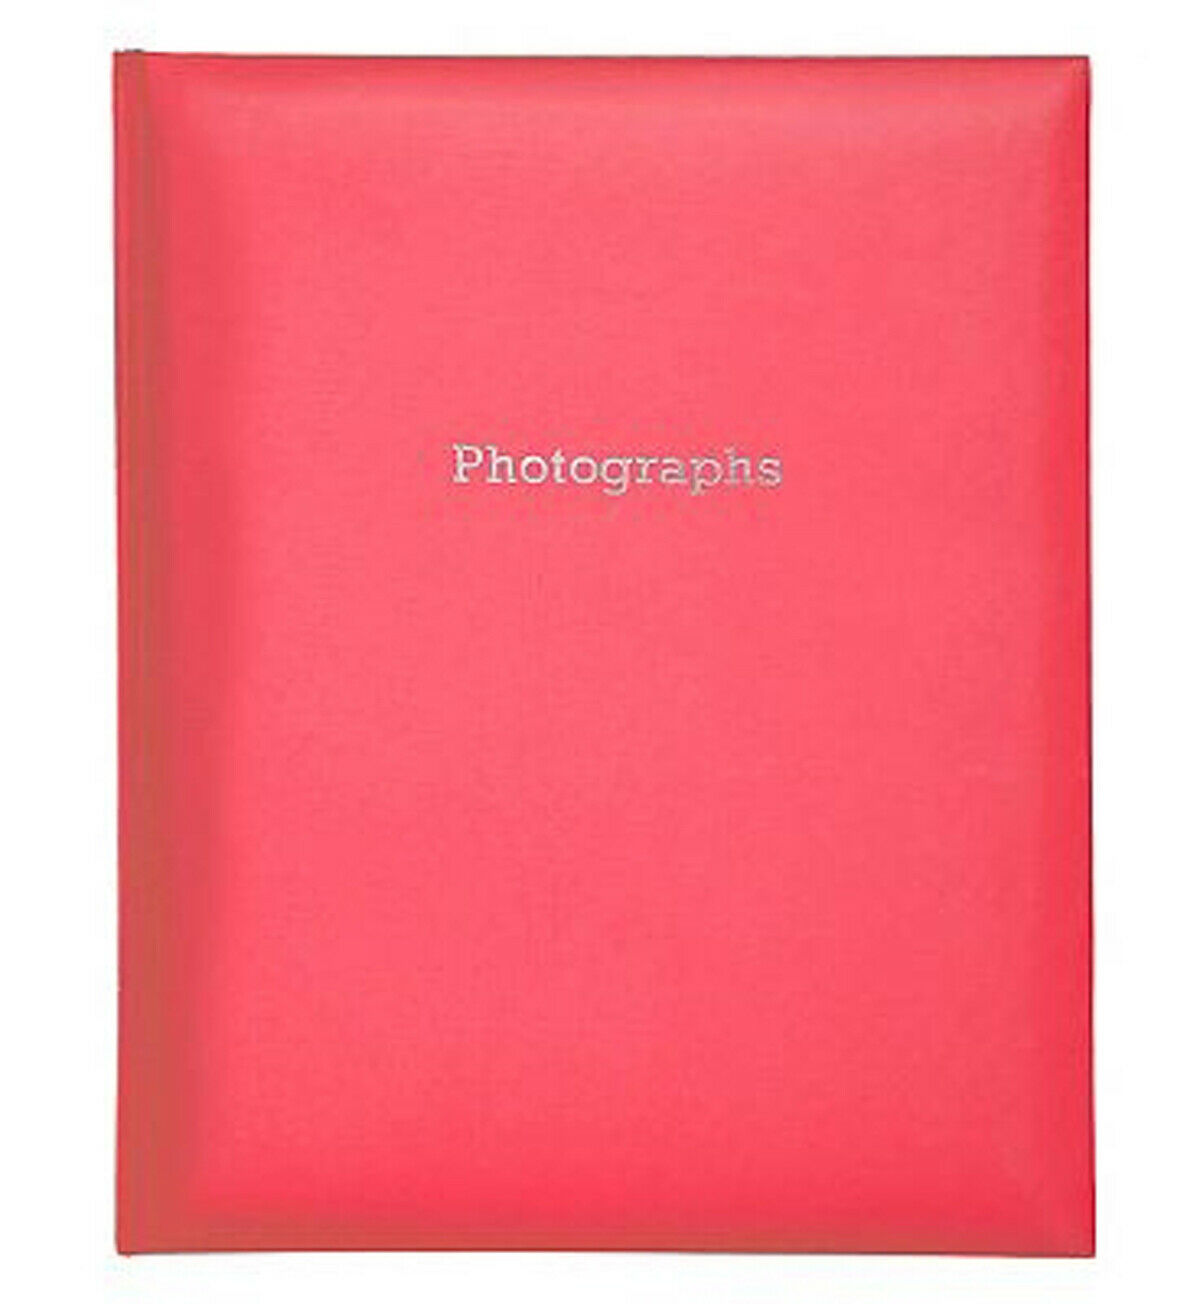 Deluxe Large RED Self Adhesive Photo Album Hold Various Sized Photos  50 Pages